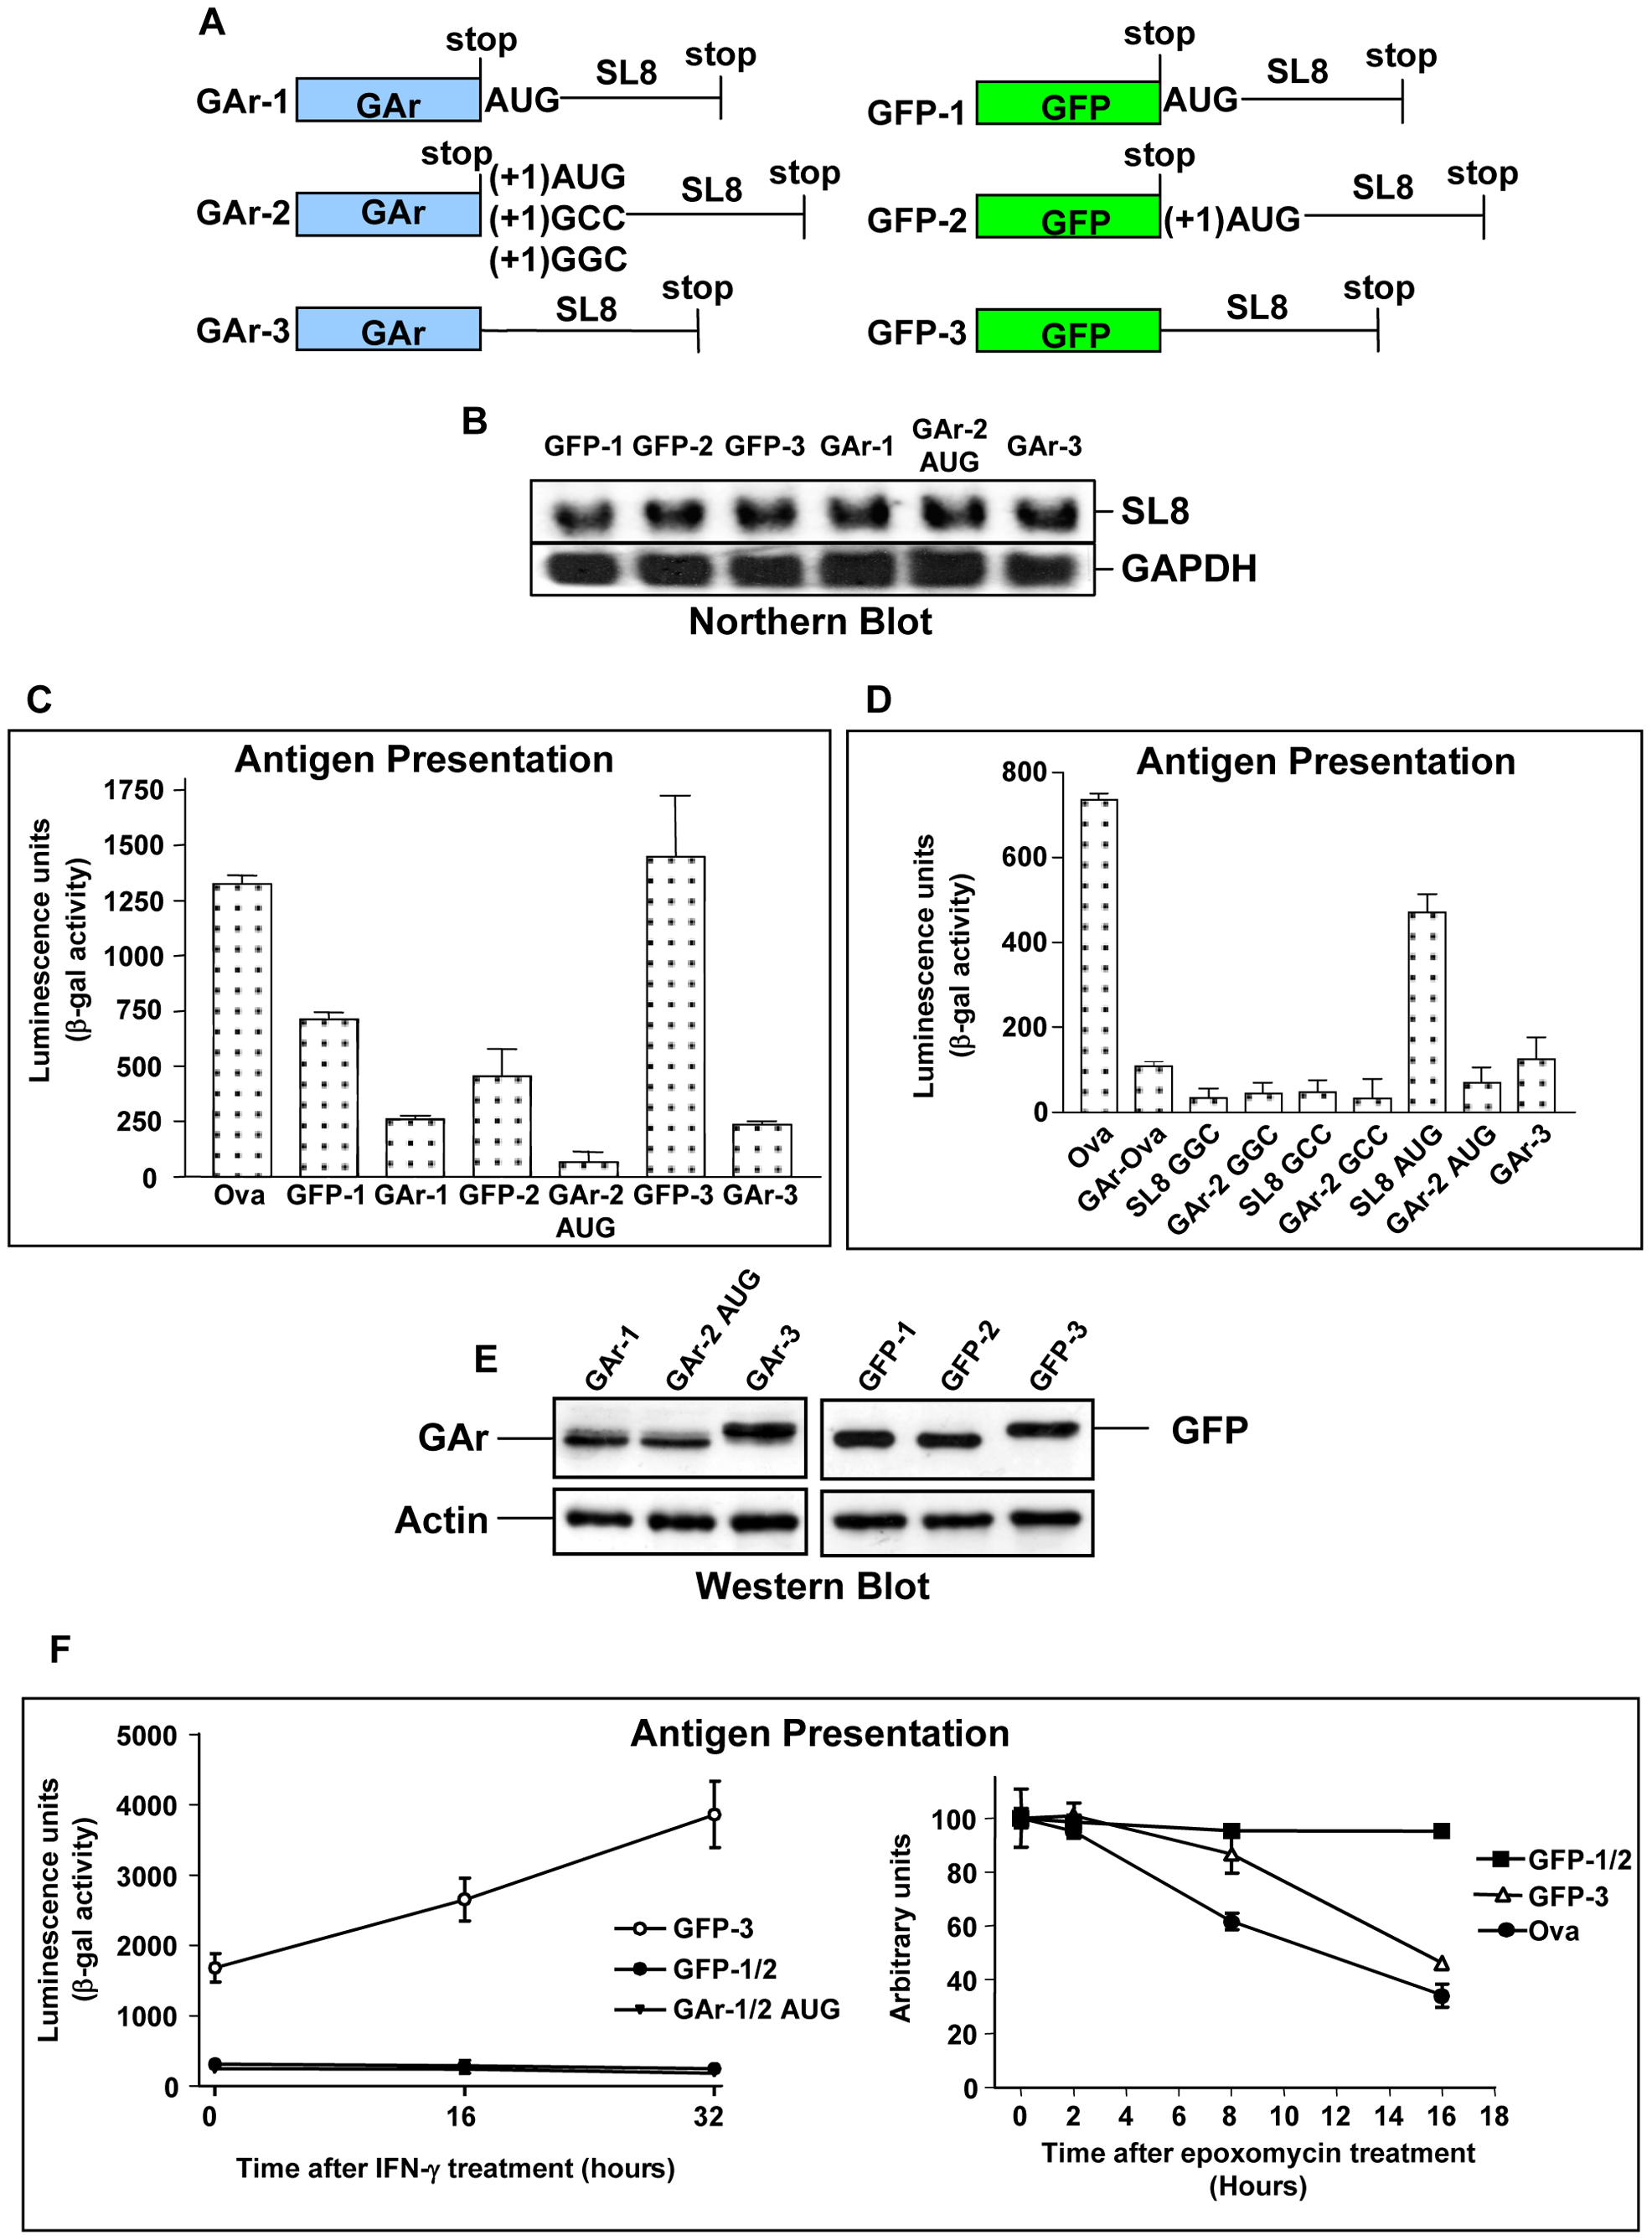 Inhibition of protein degradation is not essential for the GAr sequence to prevent endogenous antigen presentation for the MHC class I restricted pathway.